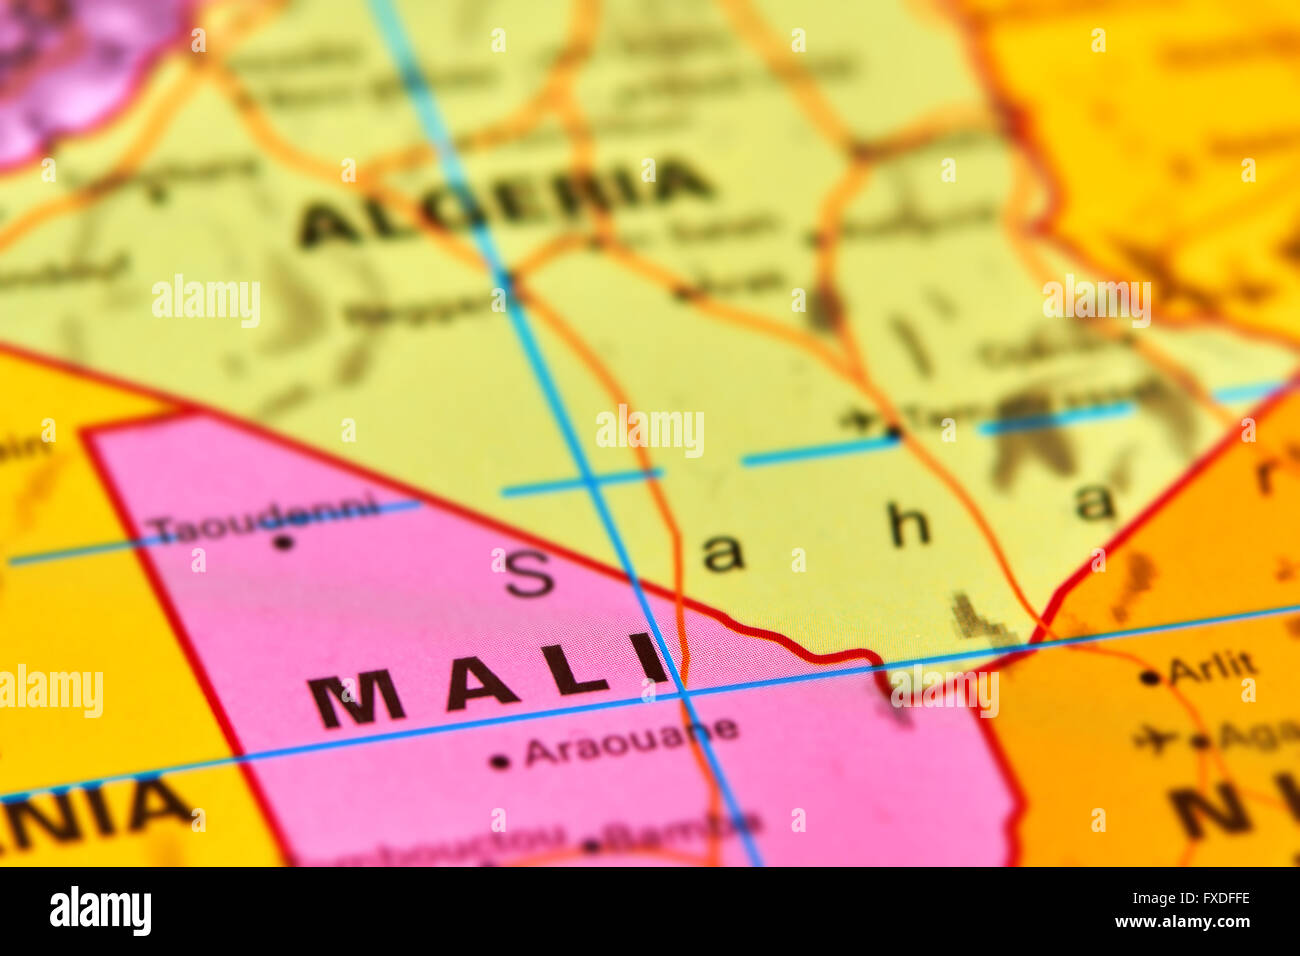 Mali Country In Africa On The World Map Stock Photo Alamy